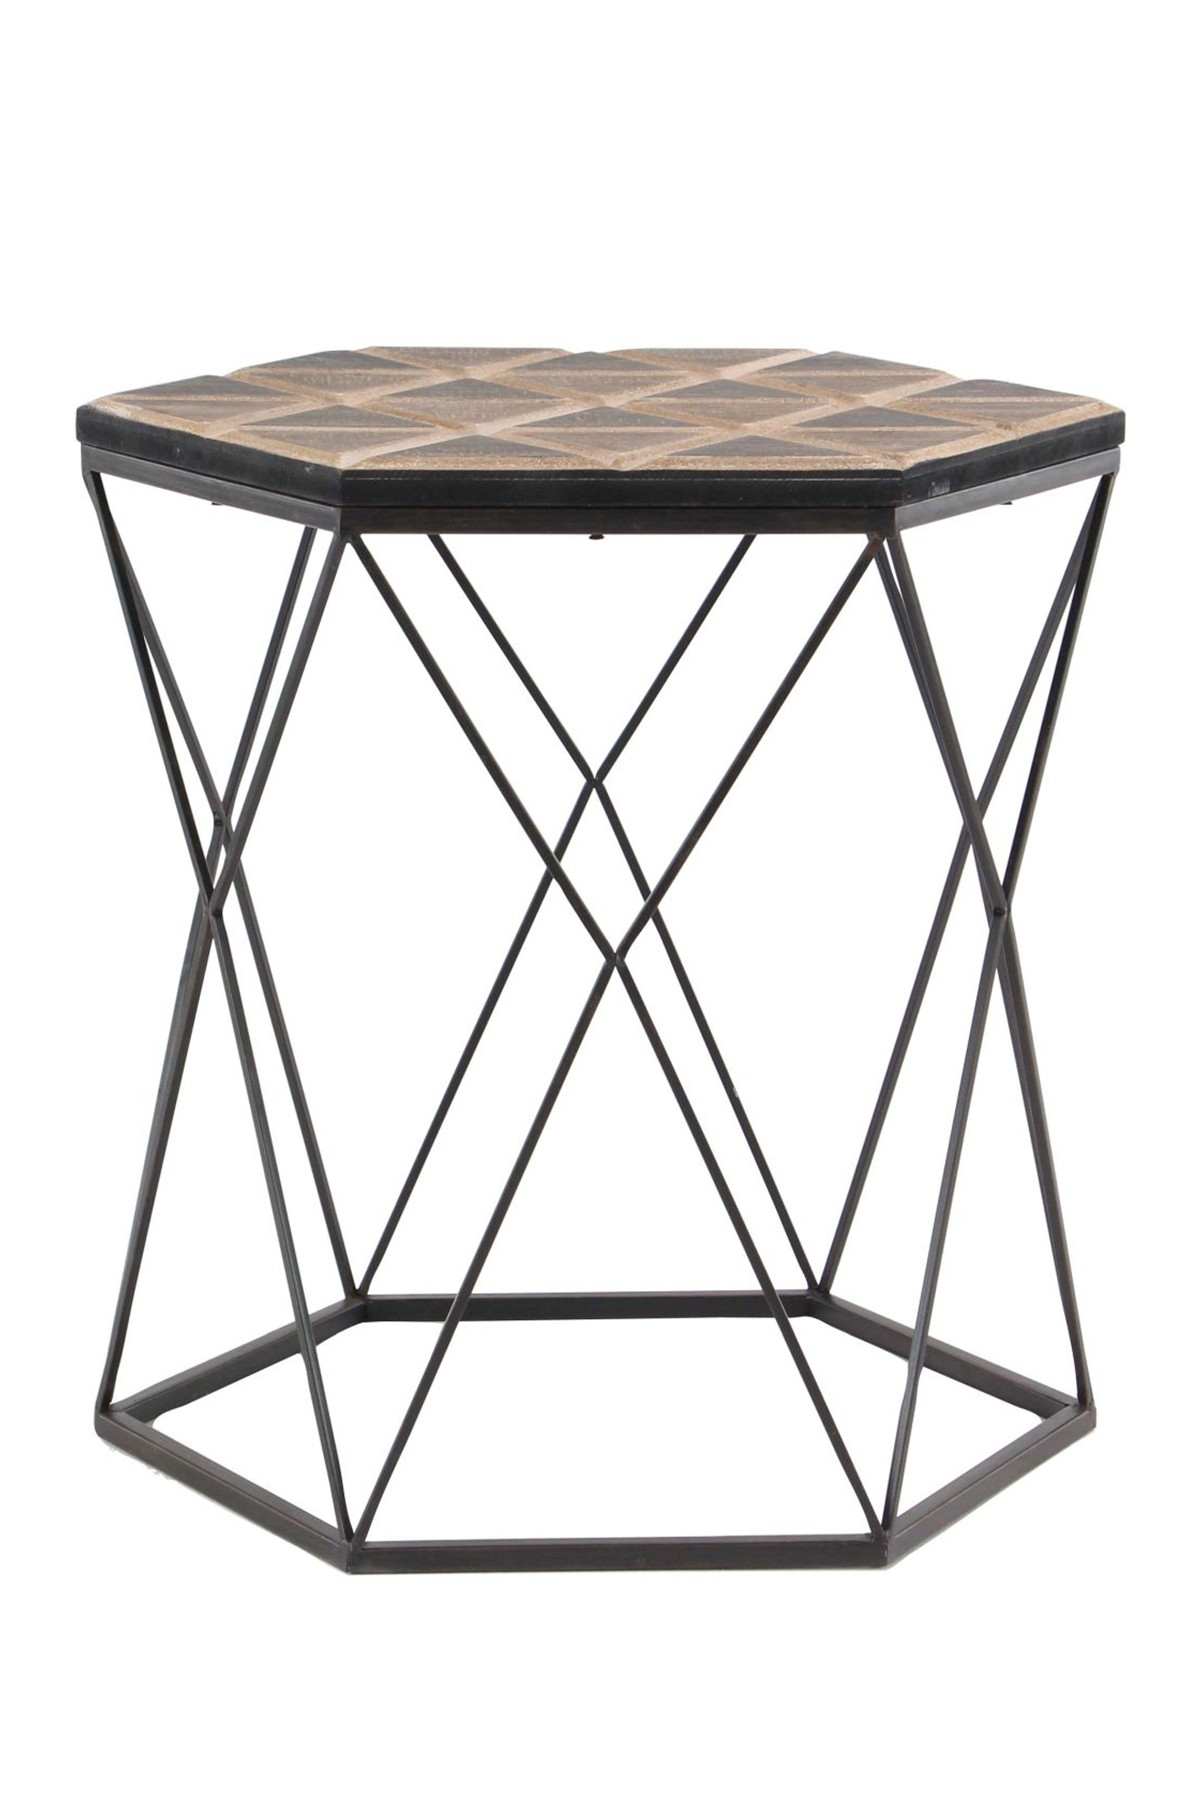 uma brown gray metal wood accent table nordstrom rack and marble side seater dining cover kohls gift registry wedding coffee base only pier imports furniture recliner end bbq